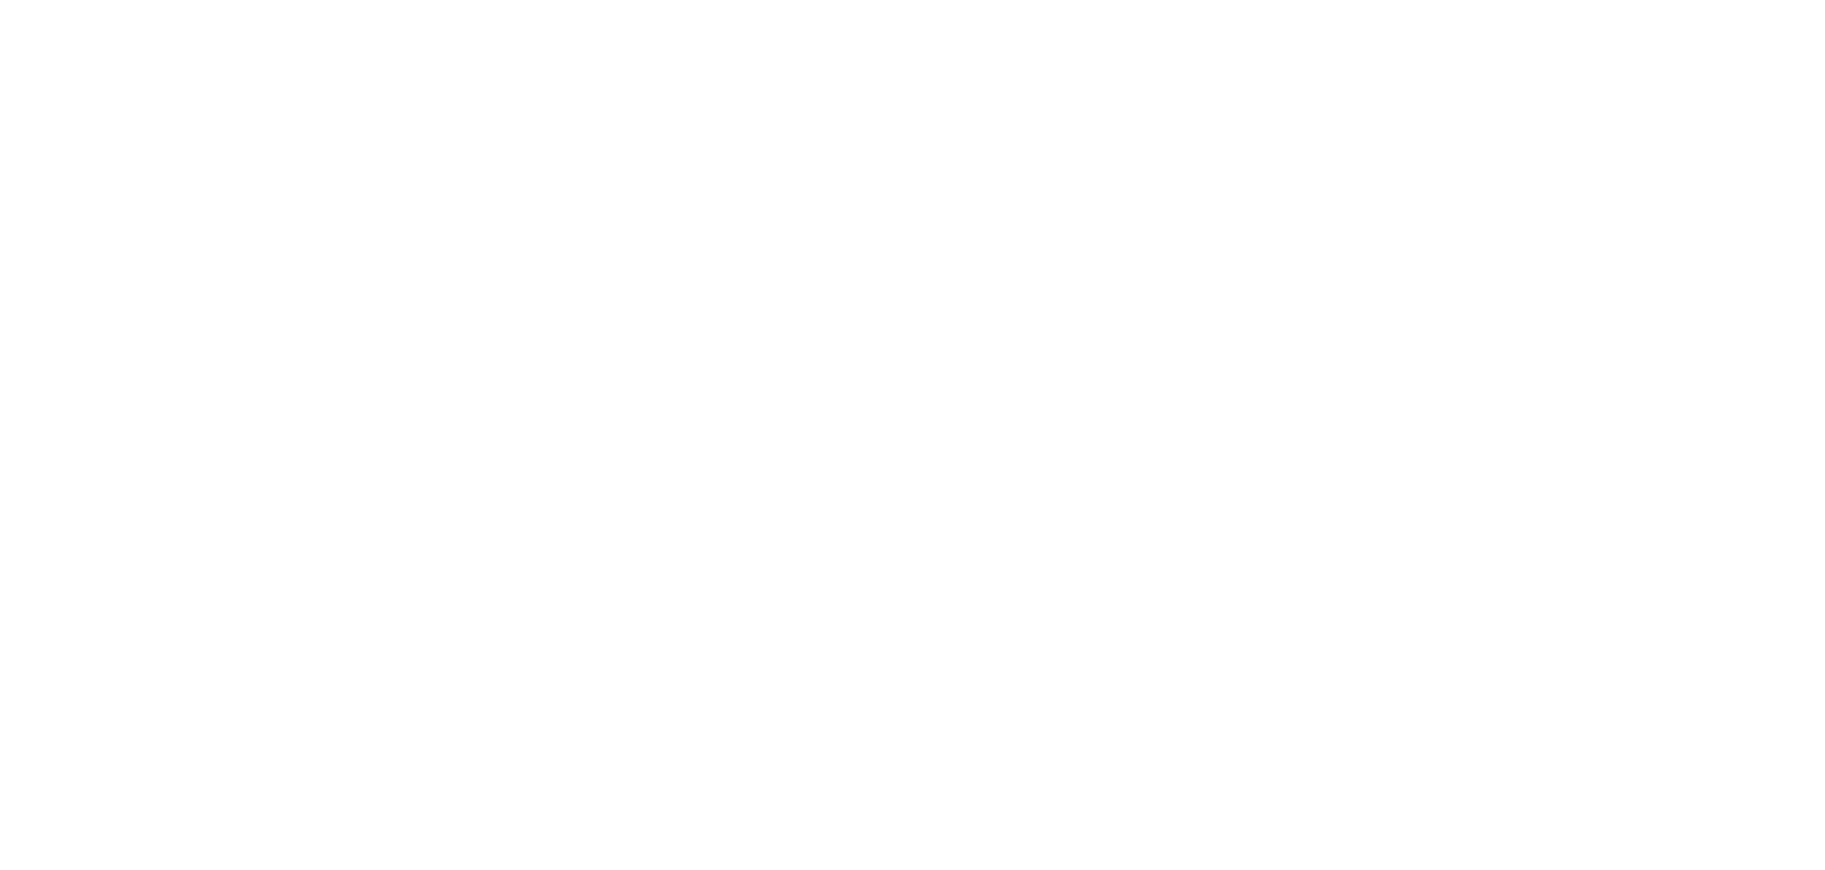 Diamond Machine Works